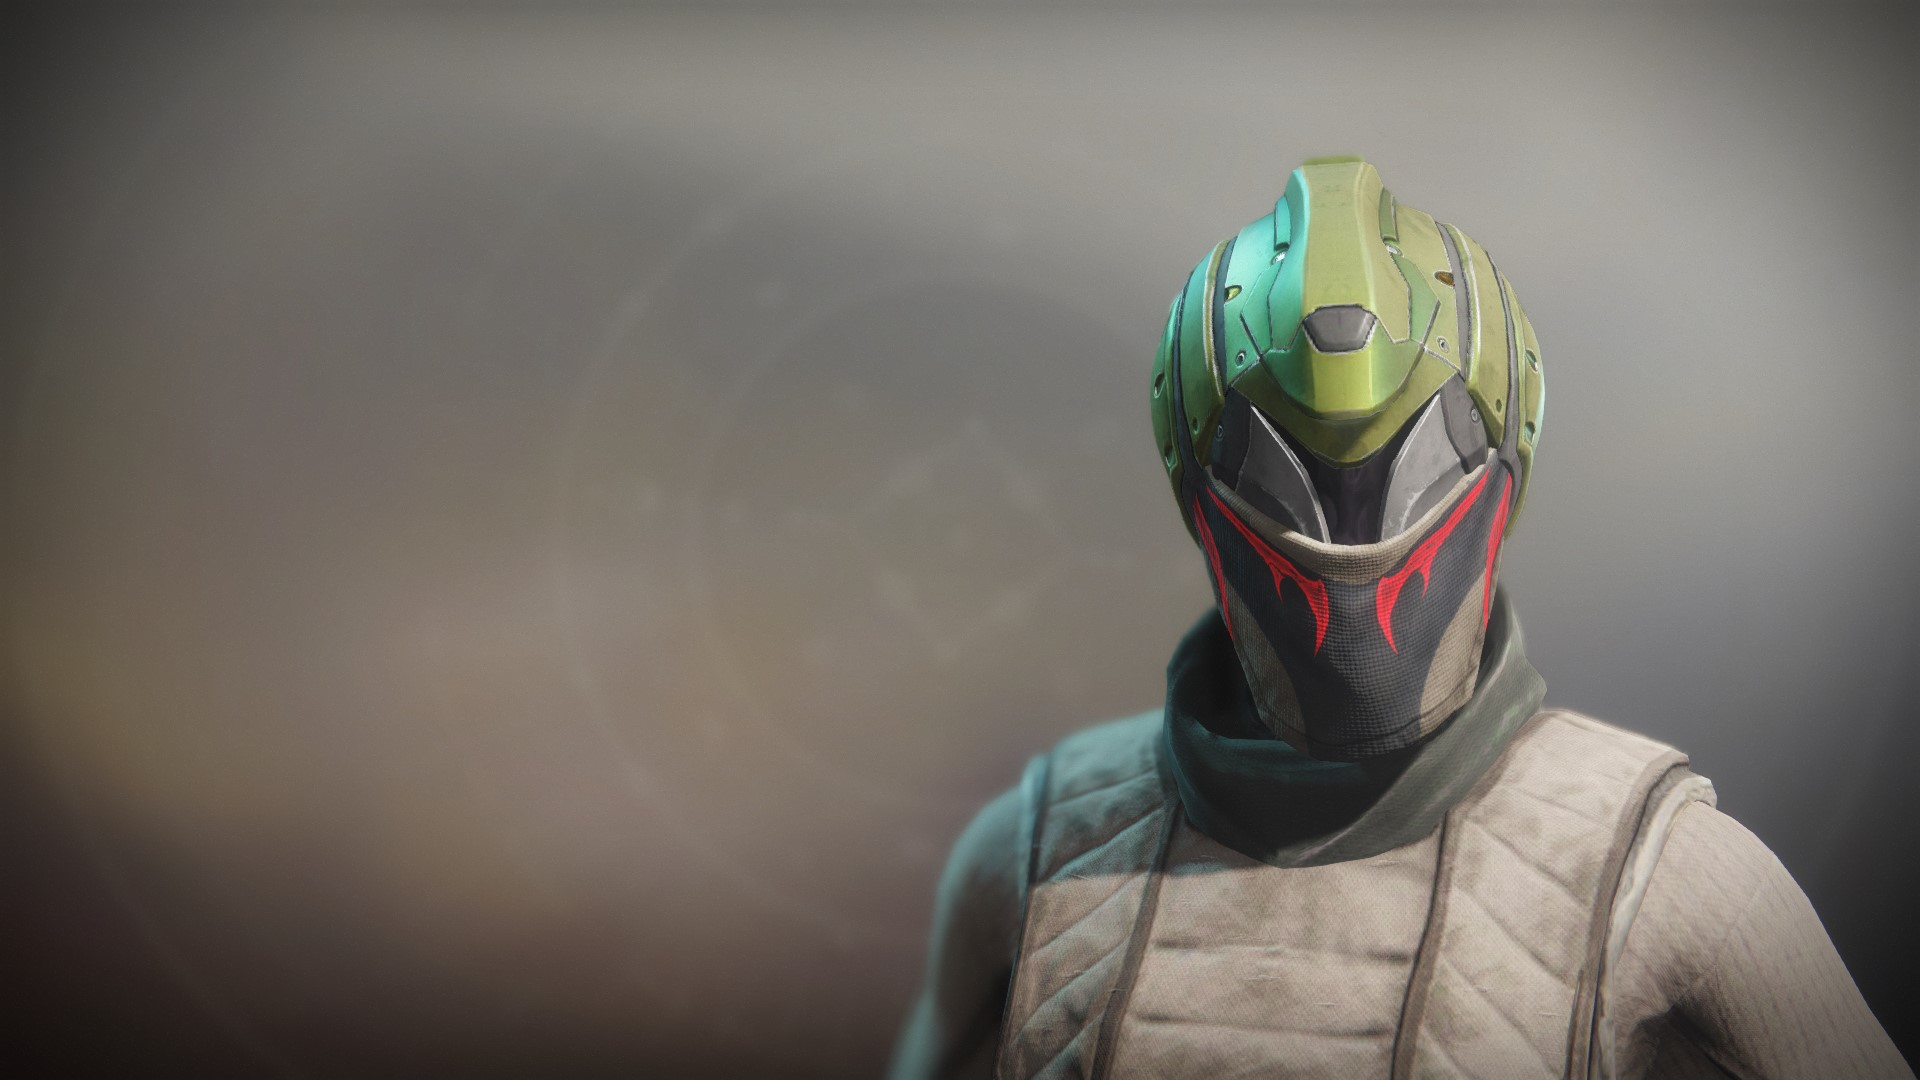 An in-game render of the Notorious Invader Hood.